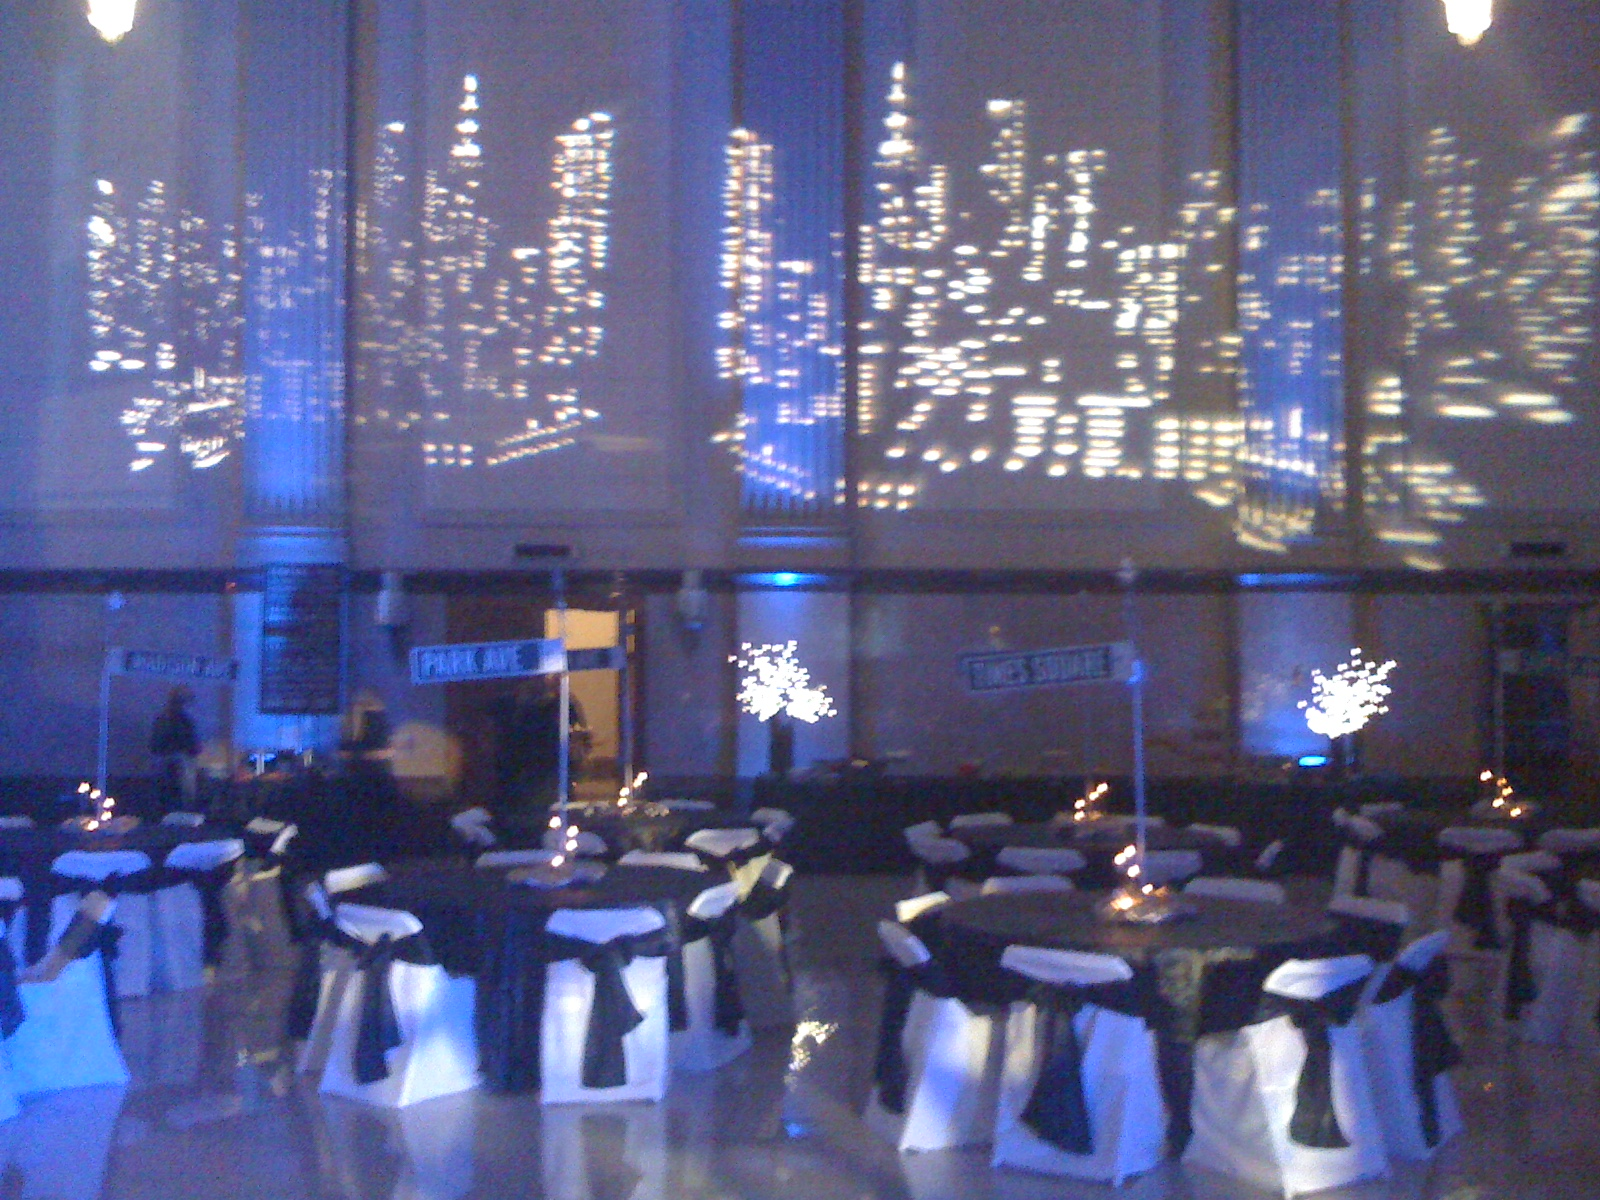 Transforming space for a party dj scott shirley 39 s blog for New york city decor